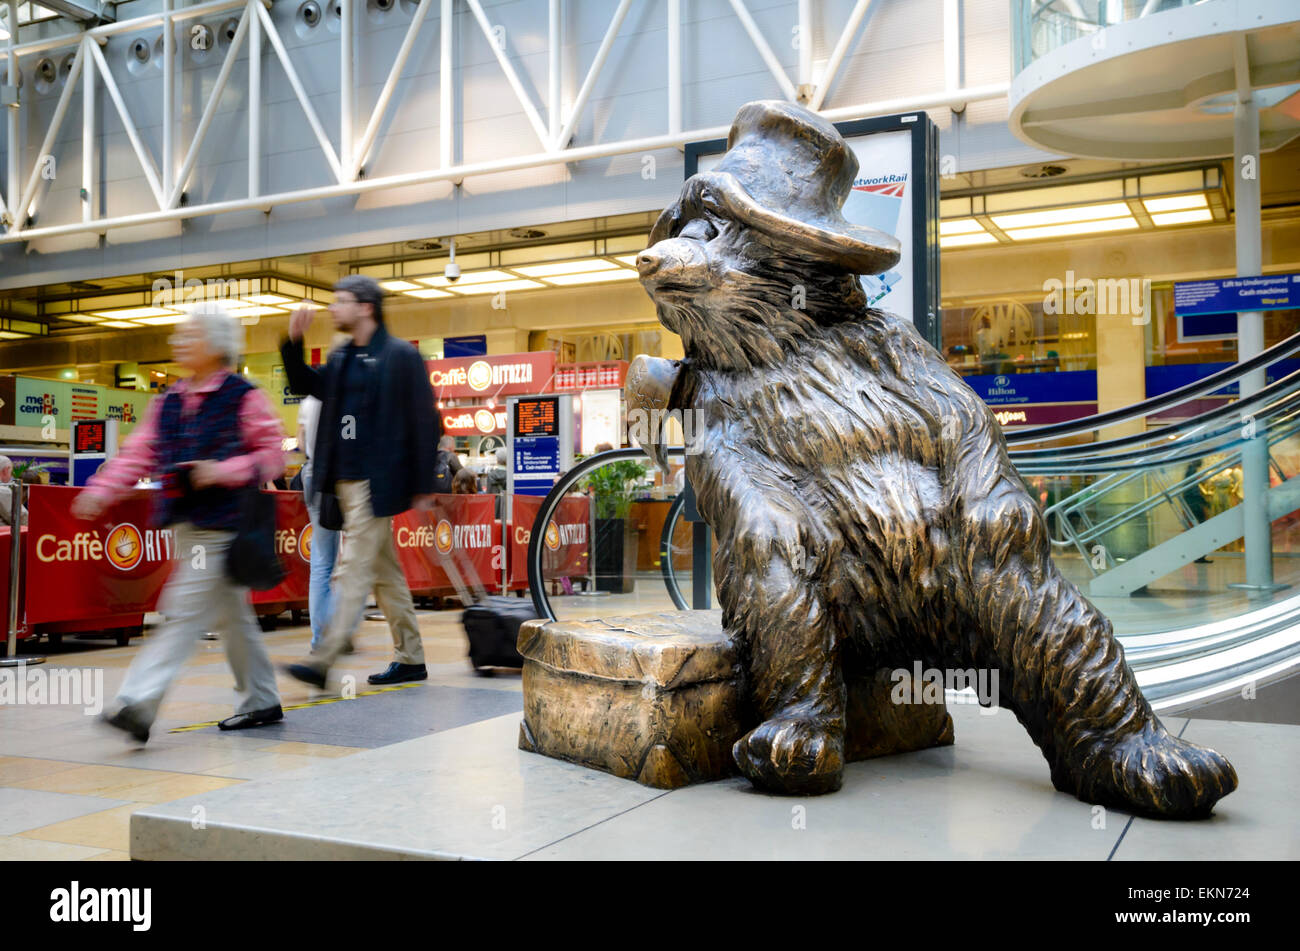 paddington station london map with Stock Photo The Paddington Bear Statue At Paddington Station London England Station 80986476 on Southwark hotel map together with Airport rail links in addition Unbuilt London Central Londons Underground Railway Loop further Alternative Tube Maps Merry Christmas likewise HotspotDetails.